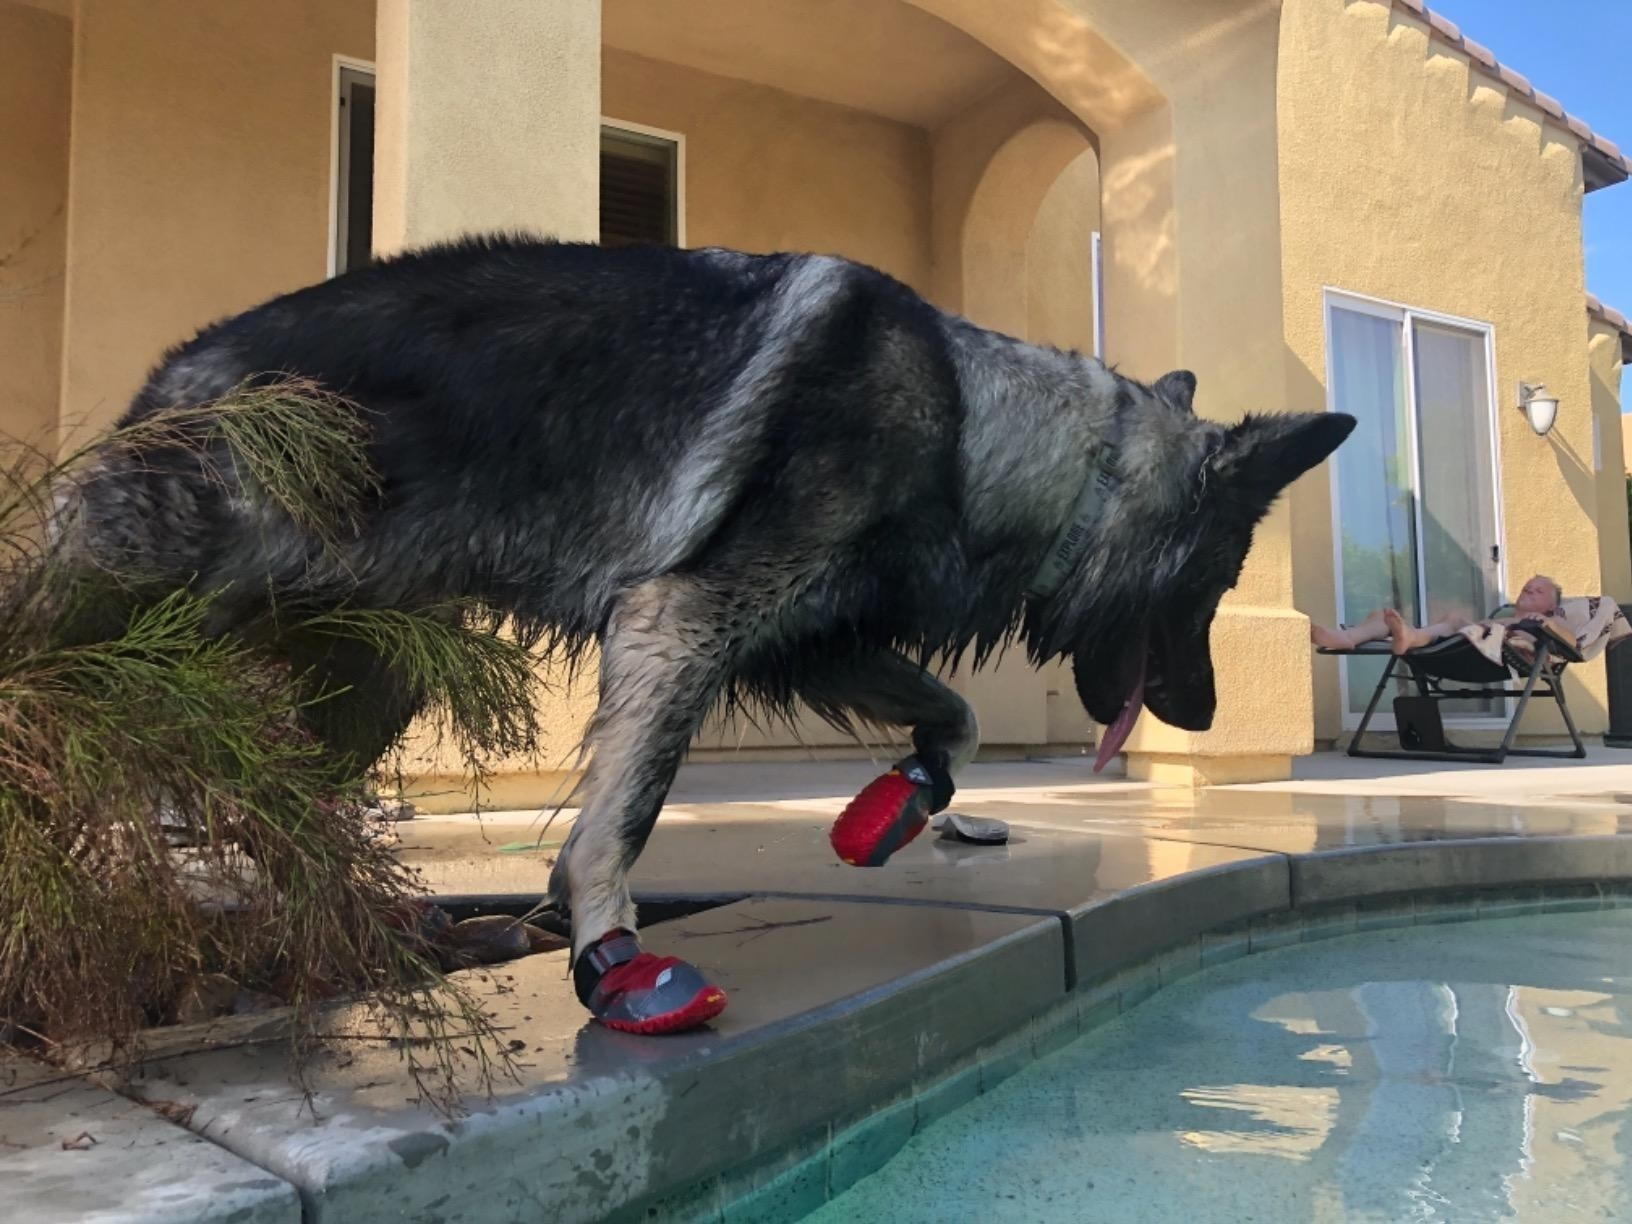 A dog wearing the booties, which go up to the ankle